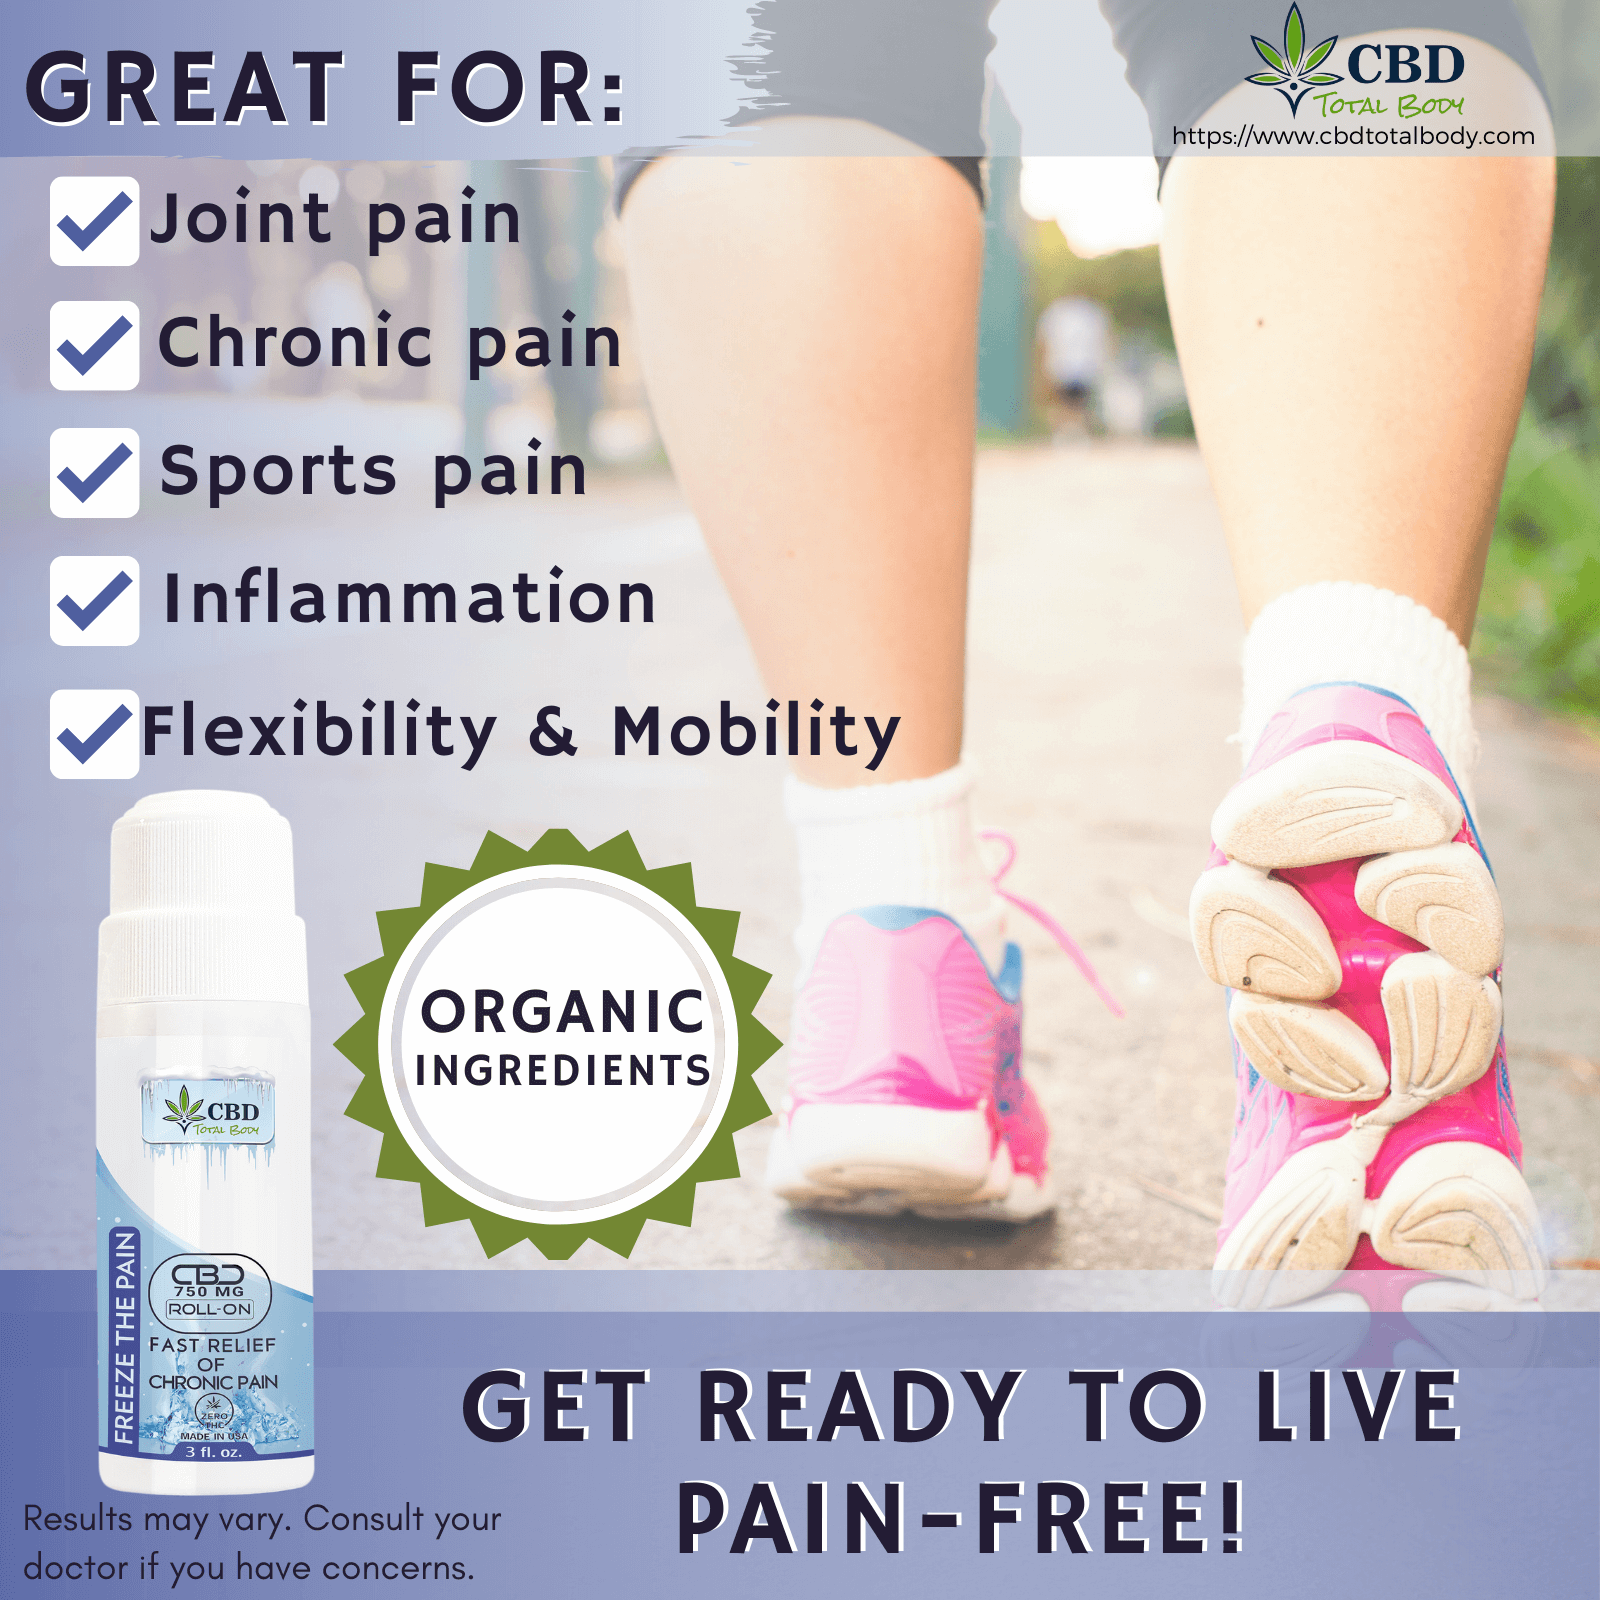 CBD Total Body CBD Freeze the Pain Infographics